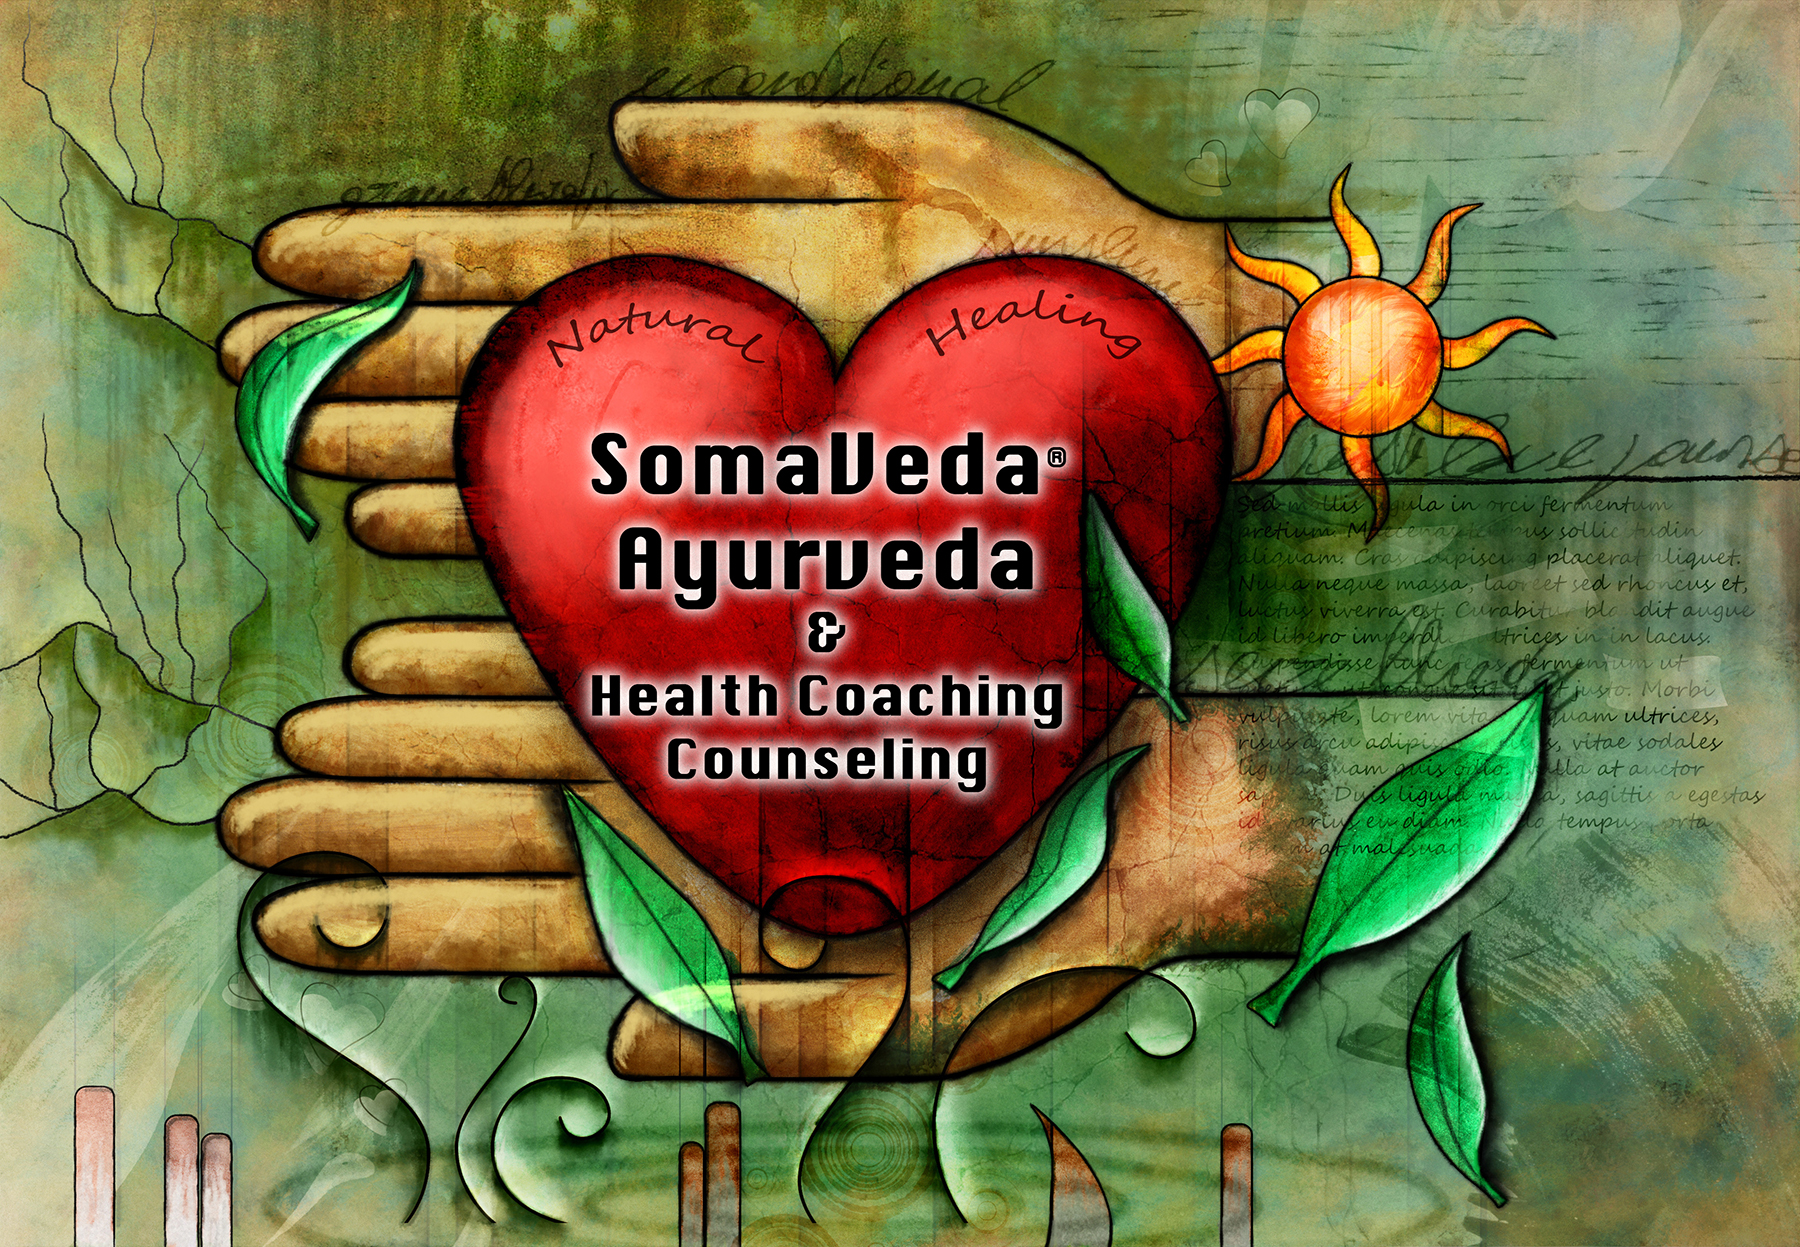 SomaVeda® Ayurveda Health Coaching Counseling